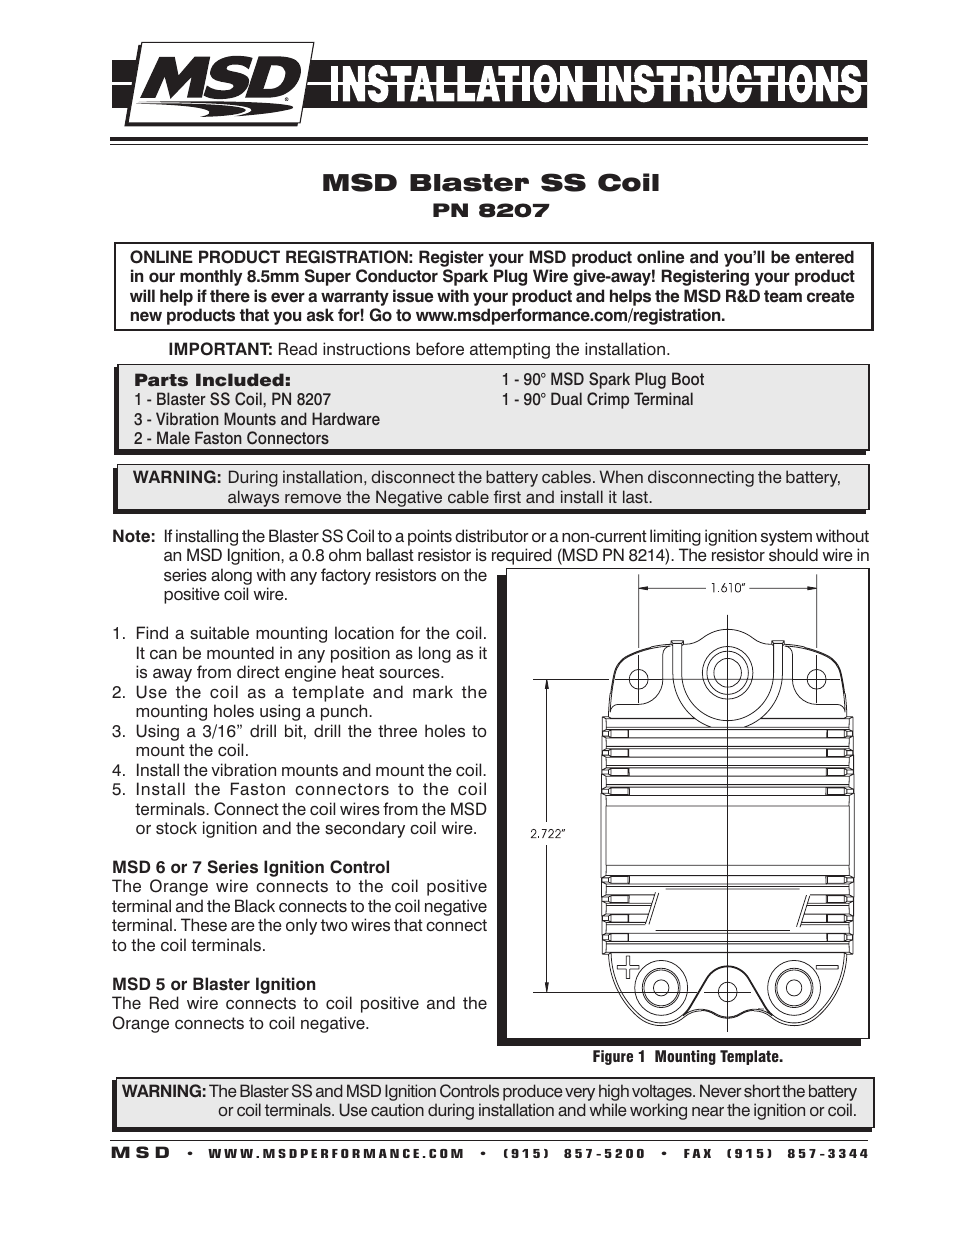 msd 8207 blaster ss coil installation page1?resize\\\\\\\\\\\\\\\\\\\\\\\\\\\\\\\\\\\\\\\\\\\\\\\\\\\\\\\\\\\\\\\\\\\\\\\\\\\\\\\\\\\\\\\\\\\\\\\\\\\\\\\\\\\\\\\=665%2C861 mallory distributor wiring diagram & mallory unilite module wiring mallory comp ss distributor wiring diagram at reclaimingppi.co